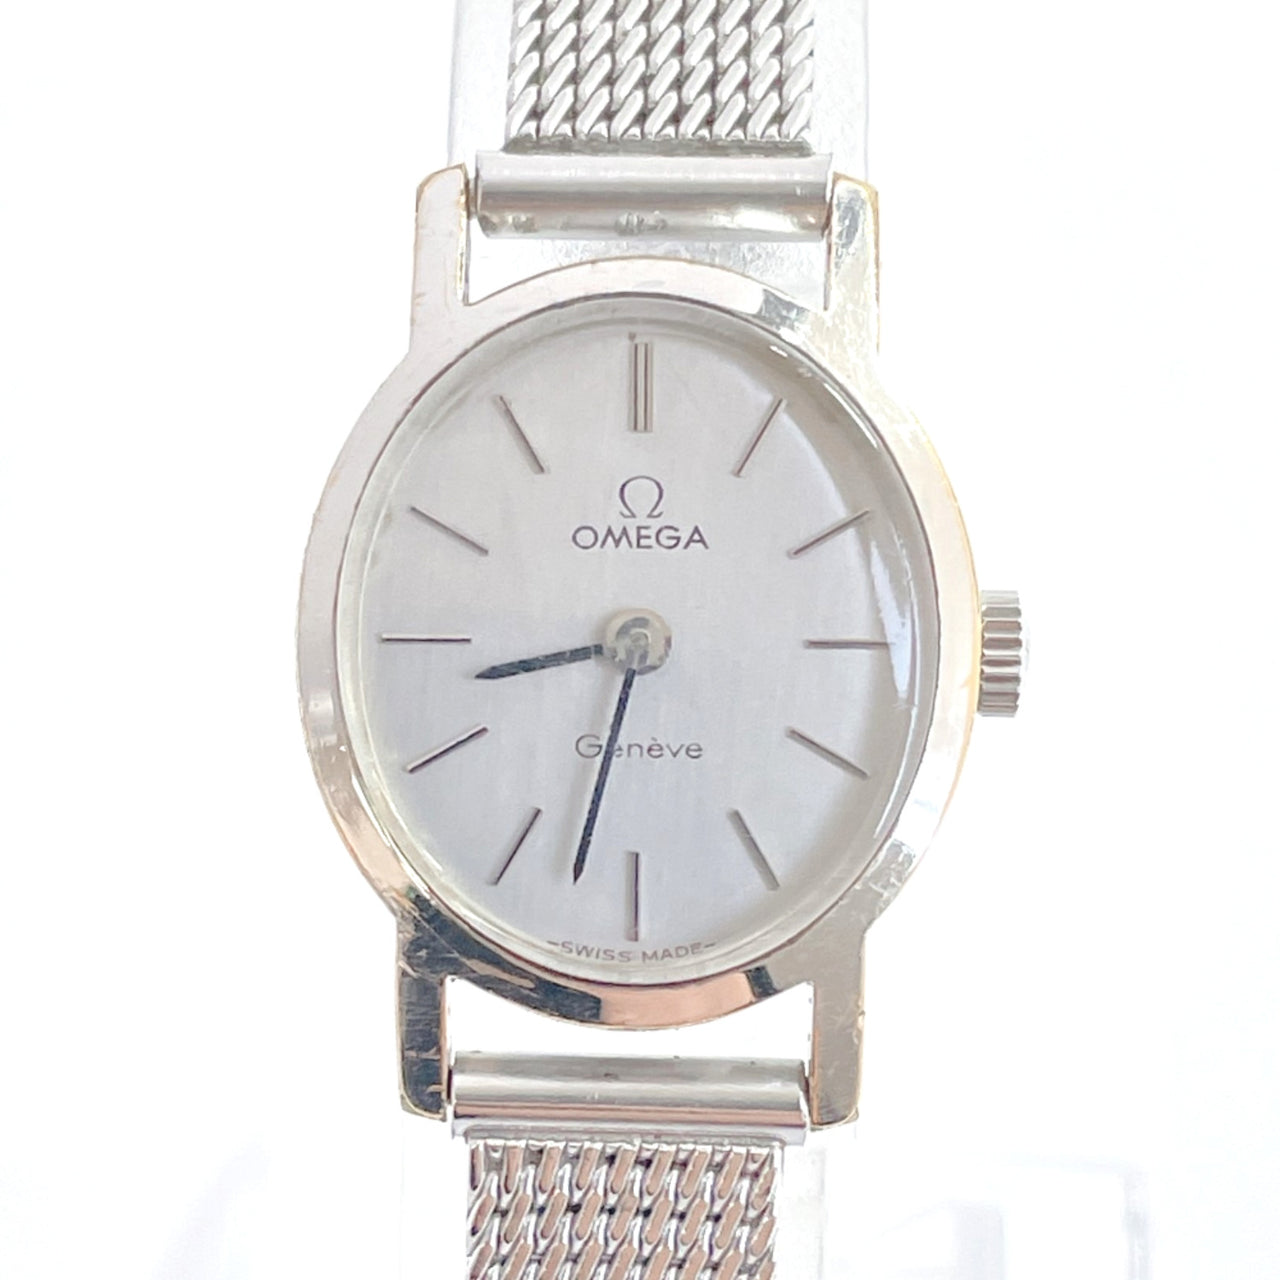 OMEGA Watches Geneva Hand Winding vintage Stainless Steel Silver Women Used